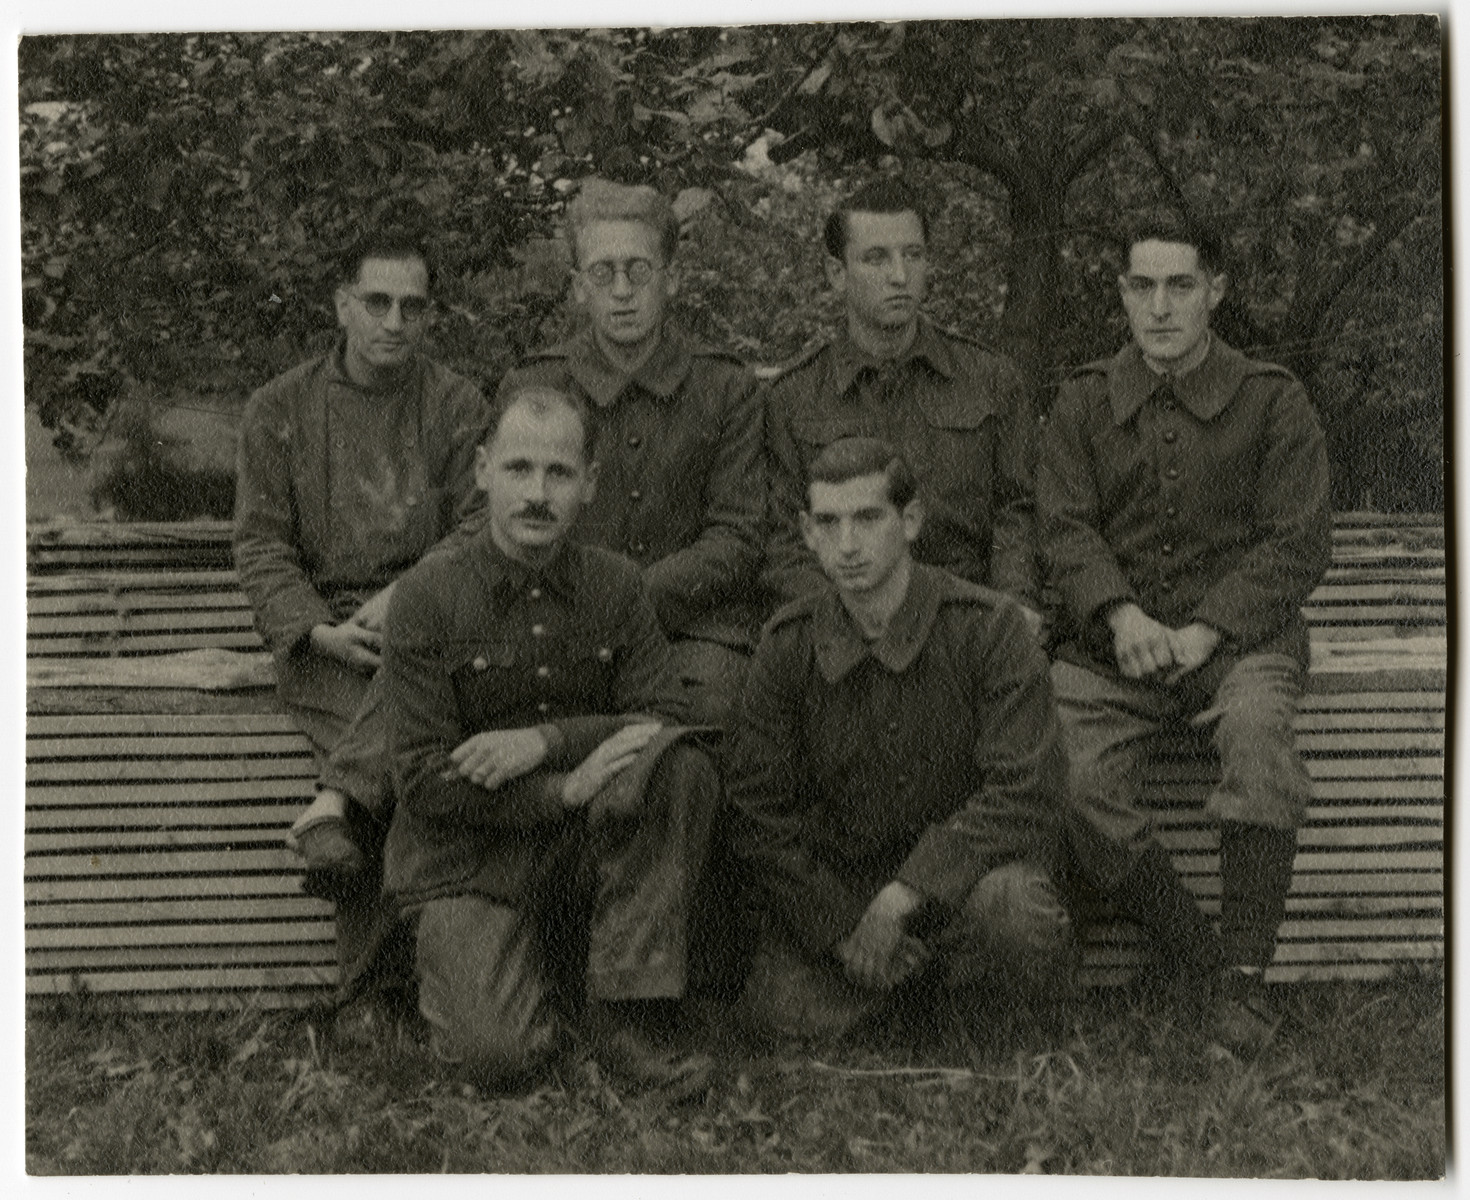 Group portrait of Belgian prisoners of war in Stalag XC in Nienburg-Weser.  Among those pictured are two Jewish POWS,  Jean-Pierre Mayer-Astruc (front left) and his friend Alexis Goldschmidt.